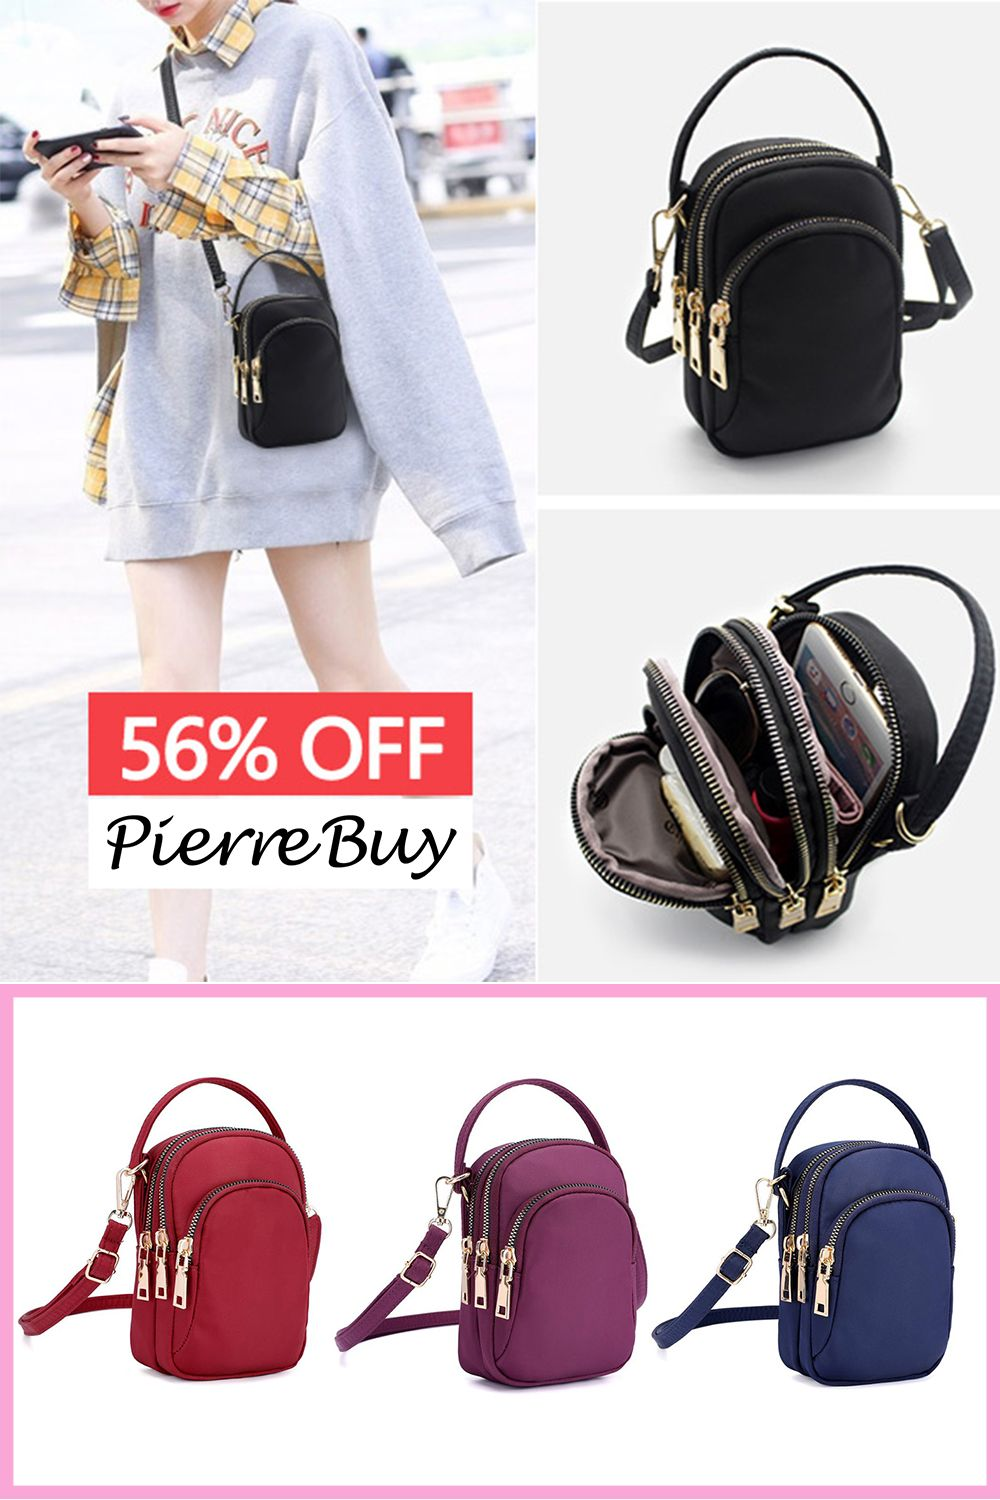 Cell Phone Purse South African Flag Crossbody Bag Womens Lightweight Portable Small Wallet Waterproof PU Leather Mini Shoulder Bag Easy Care Phone Wallet For Shopping Date Hiking